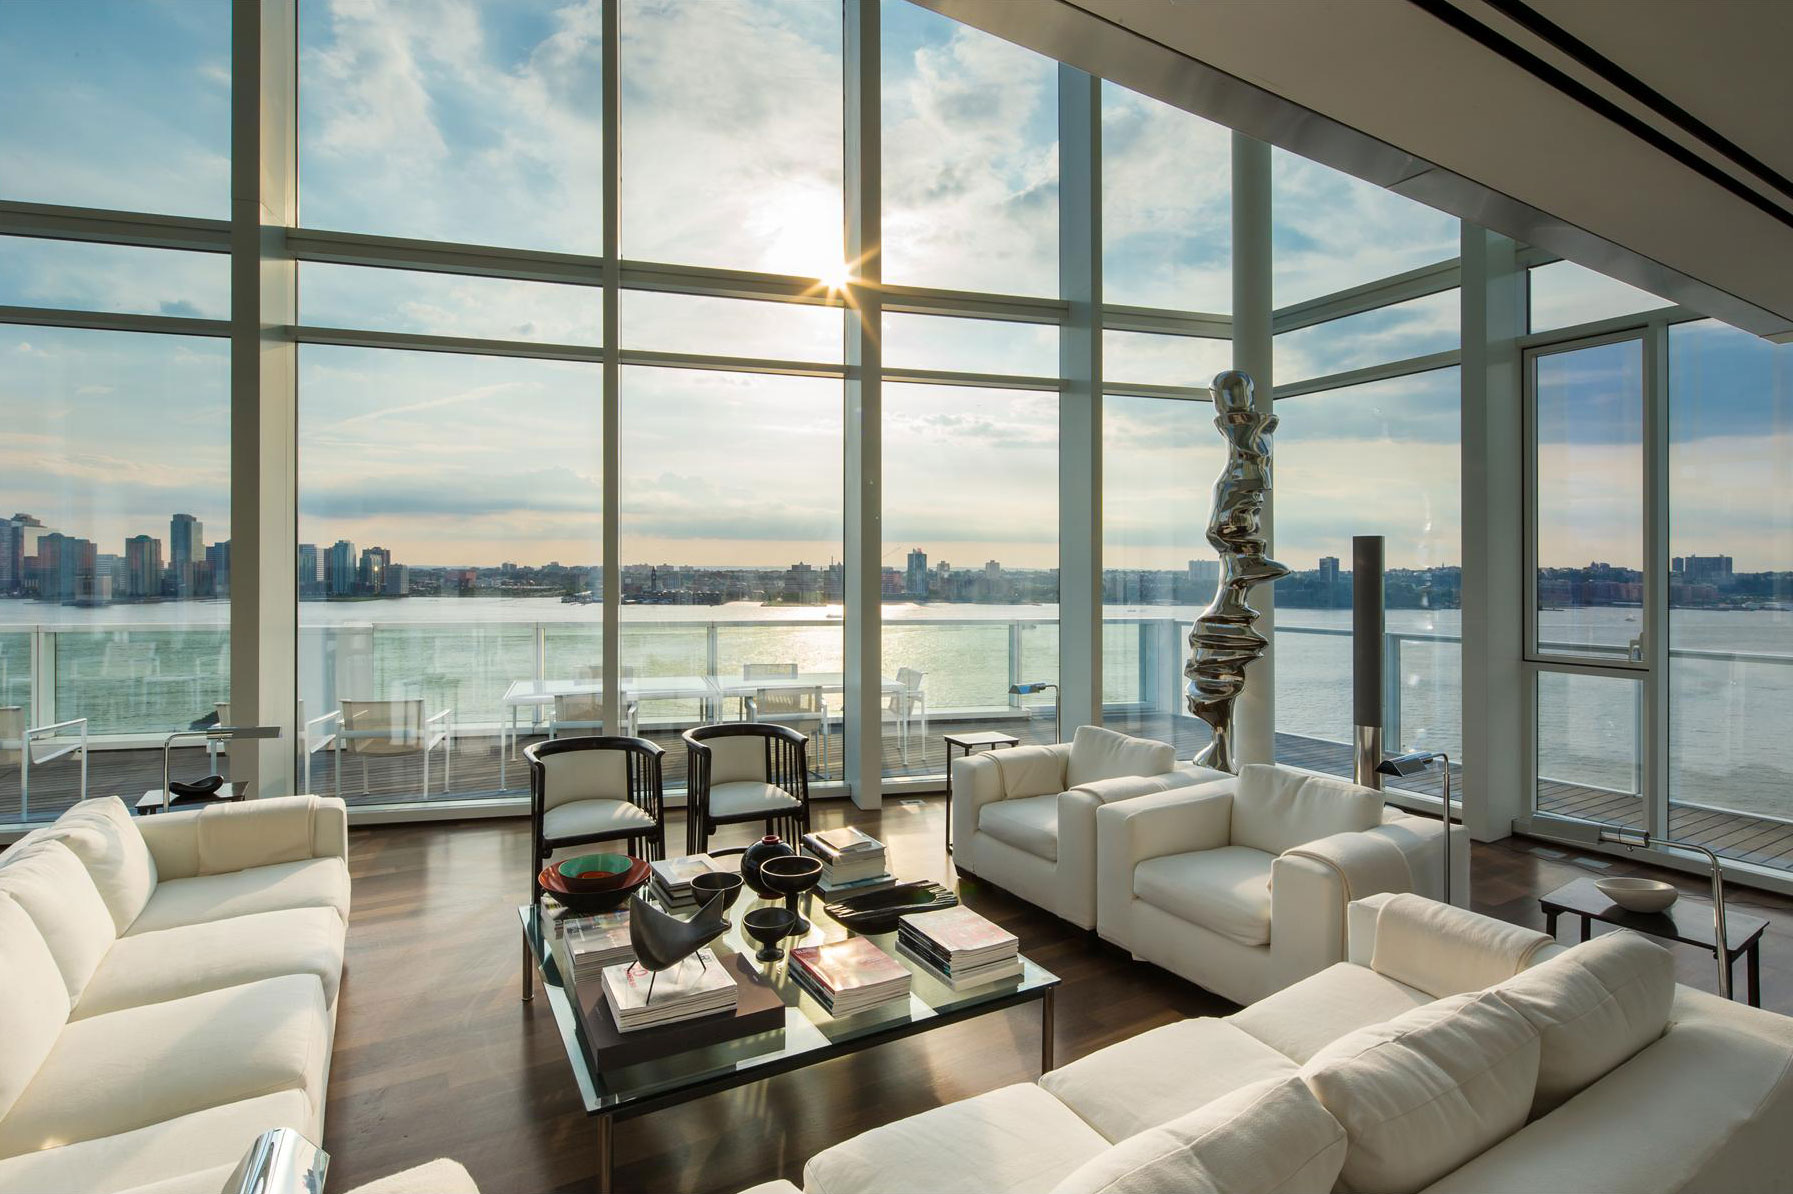 Sofas, Glass Coffee Table, Floor-to-Ceiling Windows, Apartment in Manhattan